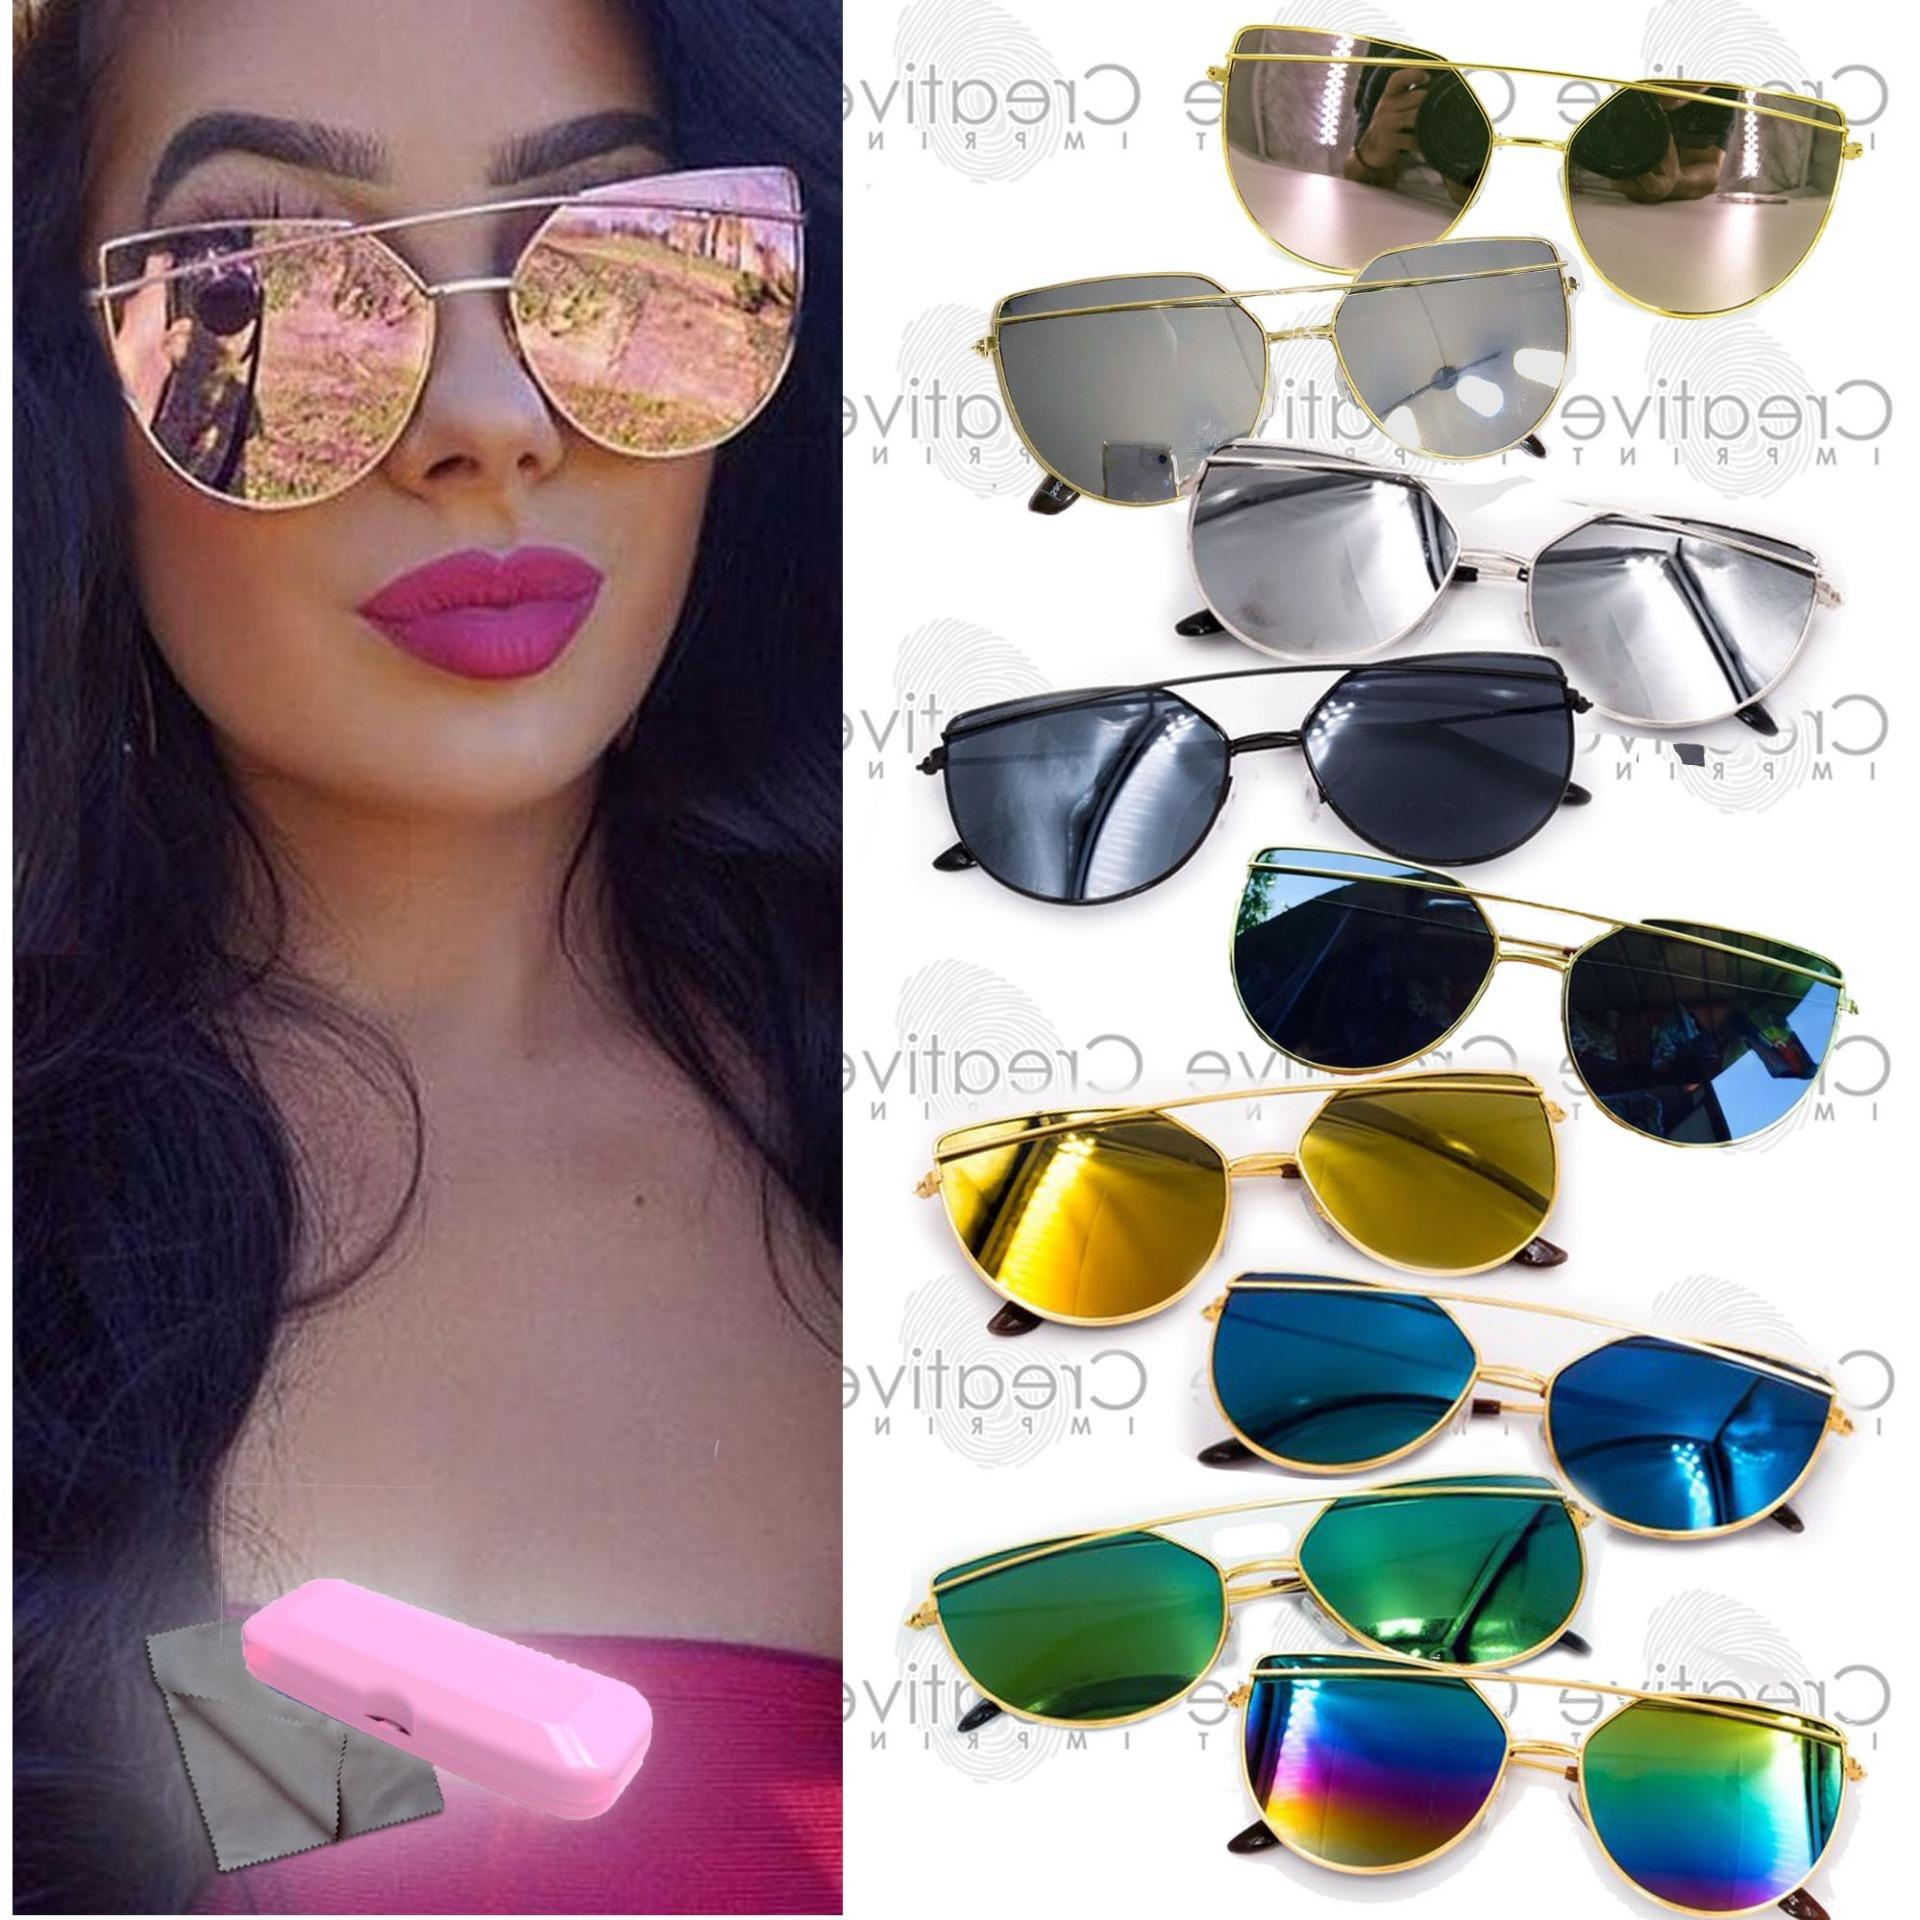 5b04e8c7a79 78214 items found in Women. Double Bridge Cat Eye Flat Sunnies Sunglasses  (FREE CASE WIPER) Shades Light Metal Lens